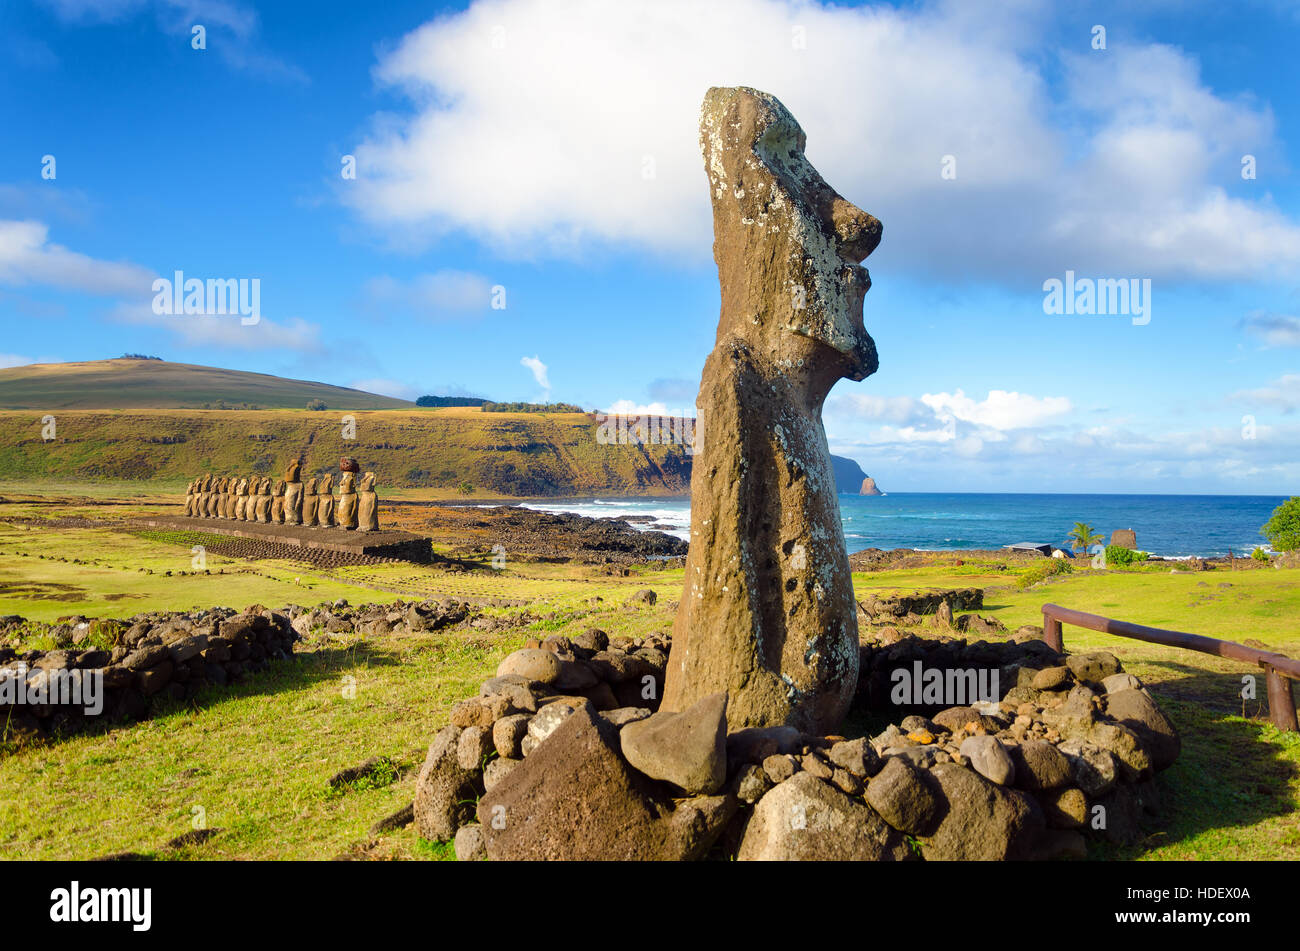 Moai statues on Easter Island at Ahu Tongariki in Chile - Stock Image